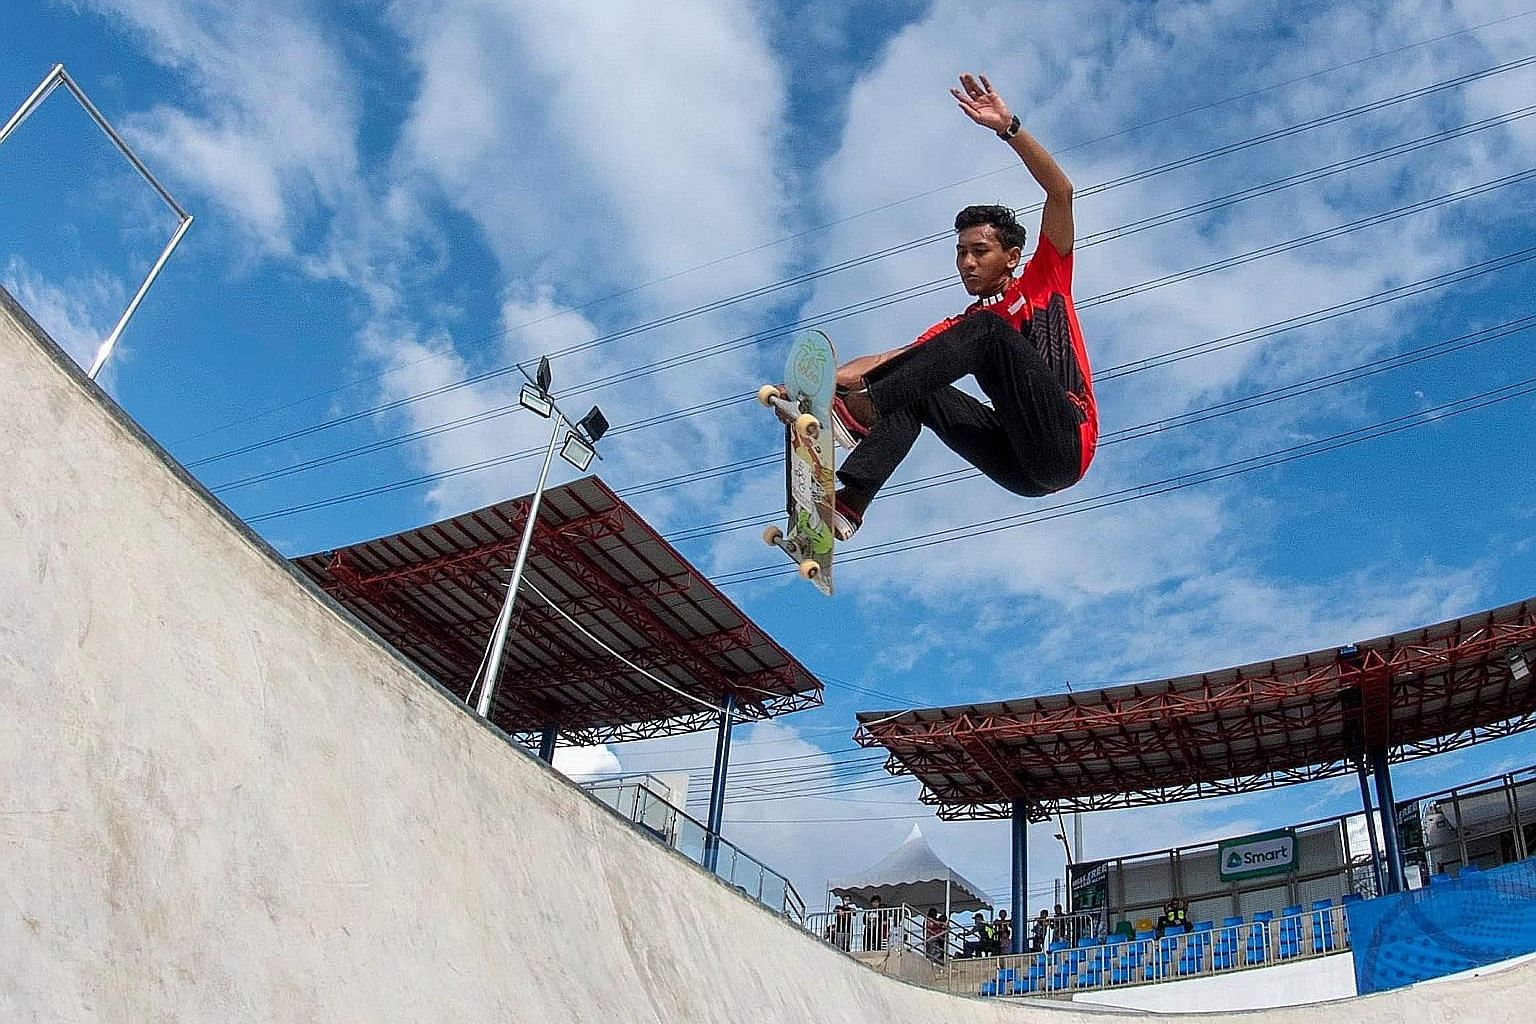 Singapore skateboarder Johan Badiuzzaman Johar training at the SEA Games venue in Tagaytay City, Philippines, last month. He finished ninth in the men's park final. PHOTO: SPORT SINGAPORE